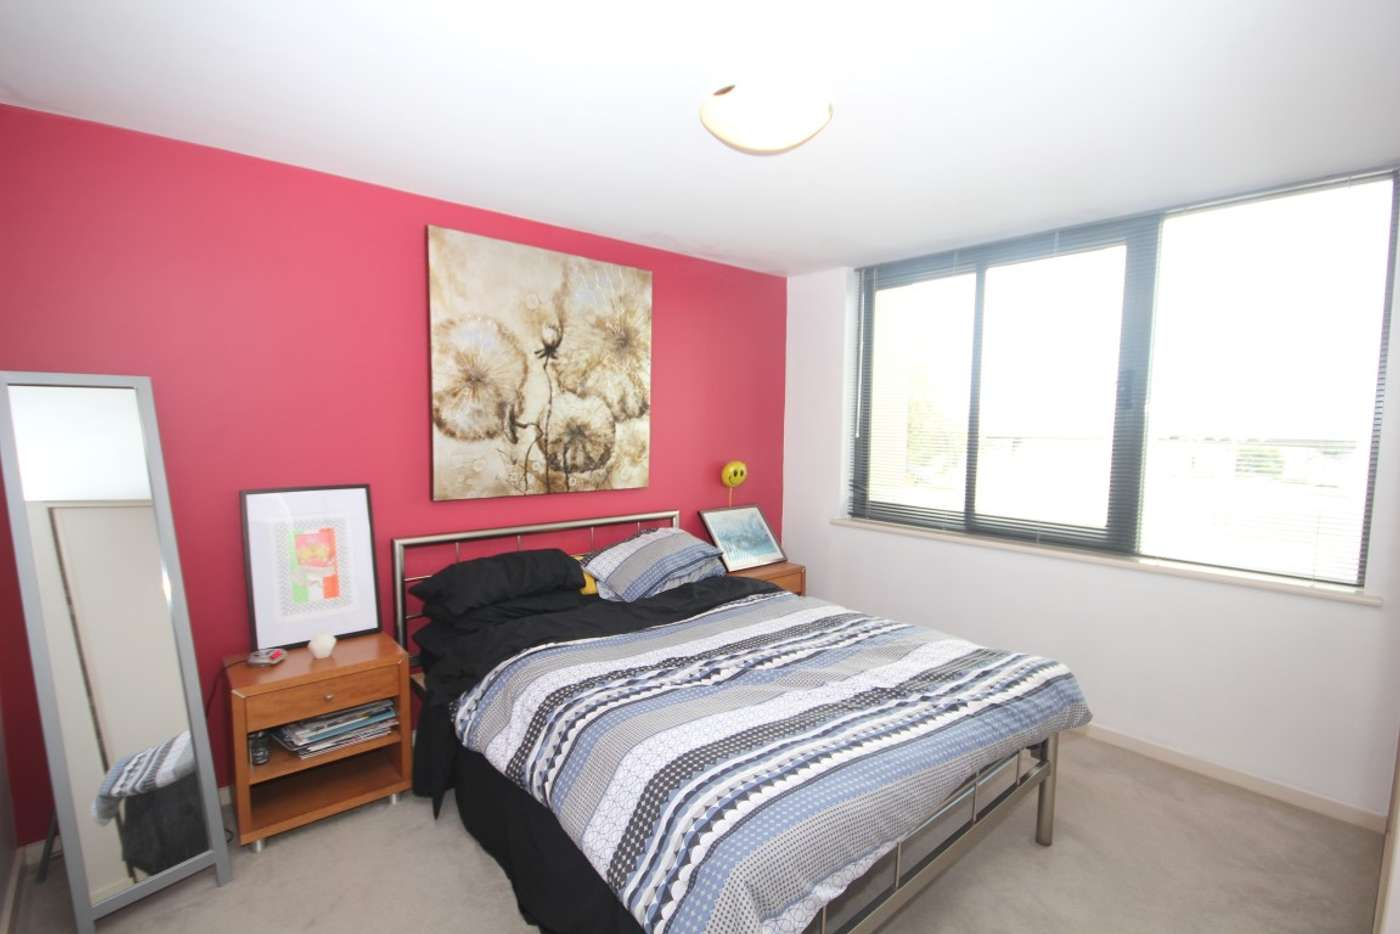 Seventh view of Homely apartment listing, 5/15 Stone Street, South Perth WA 6151